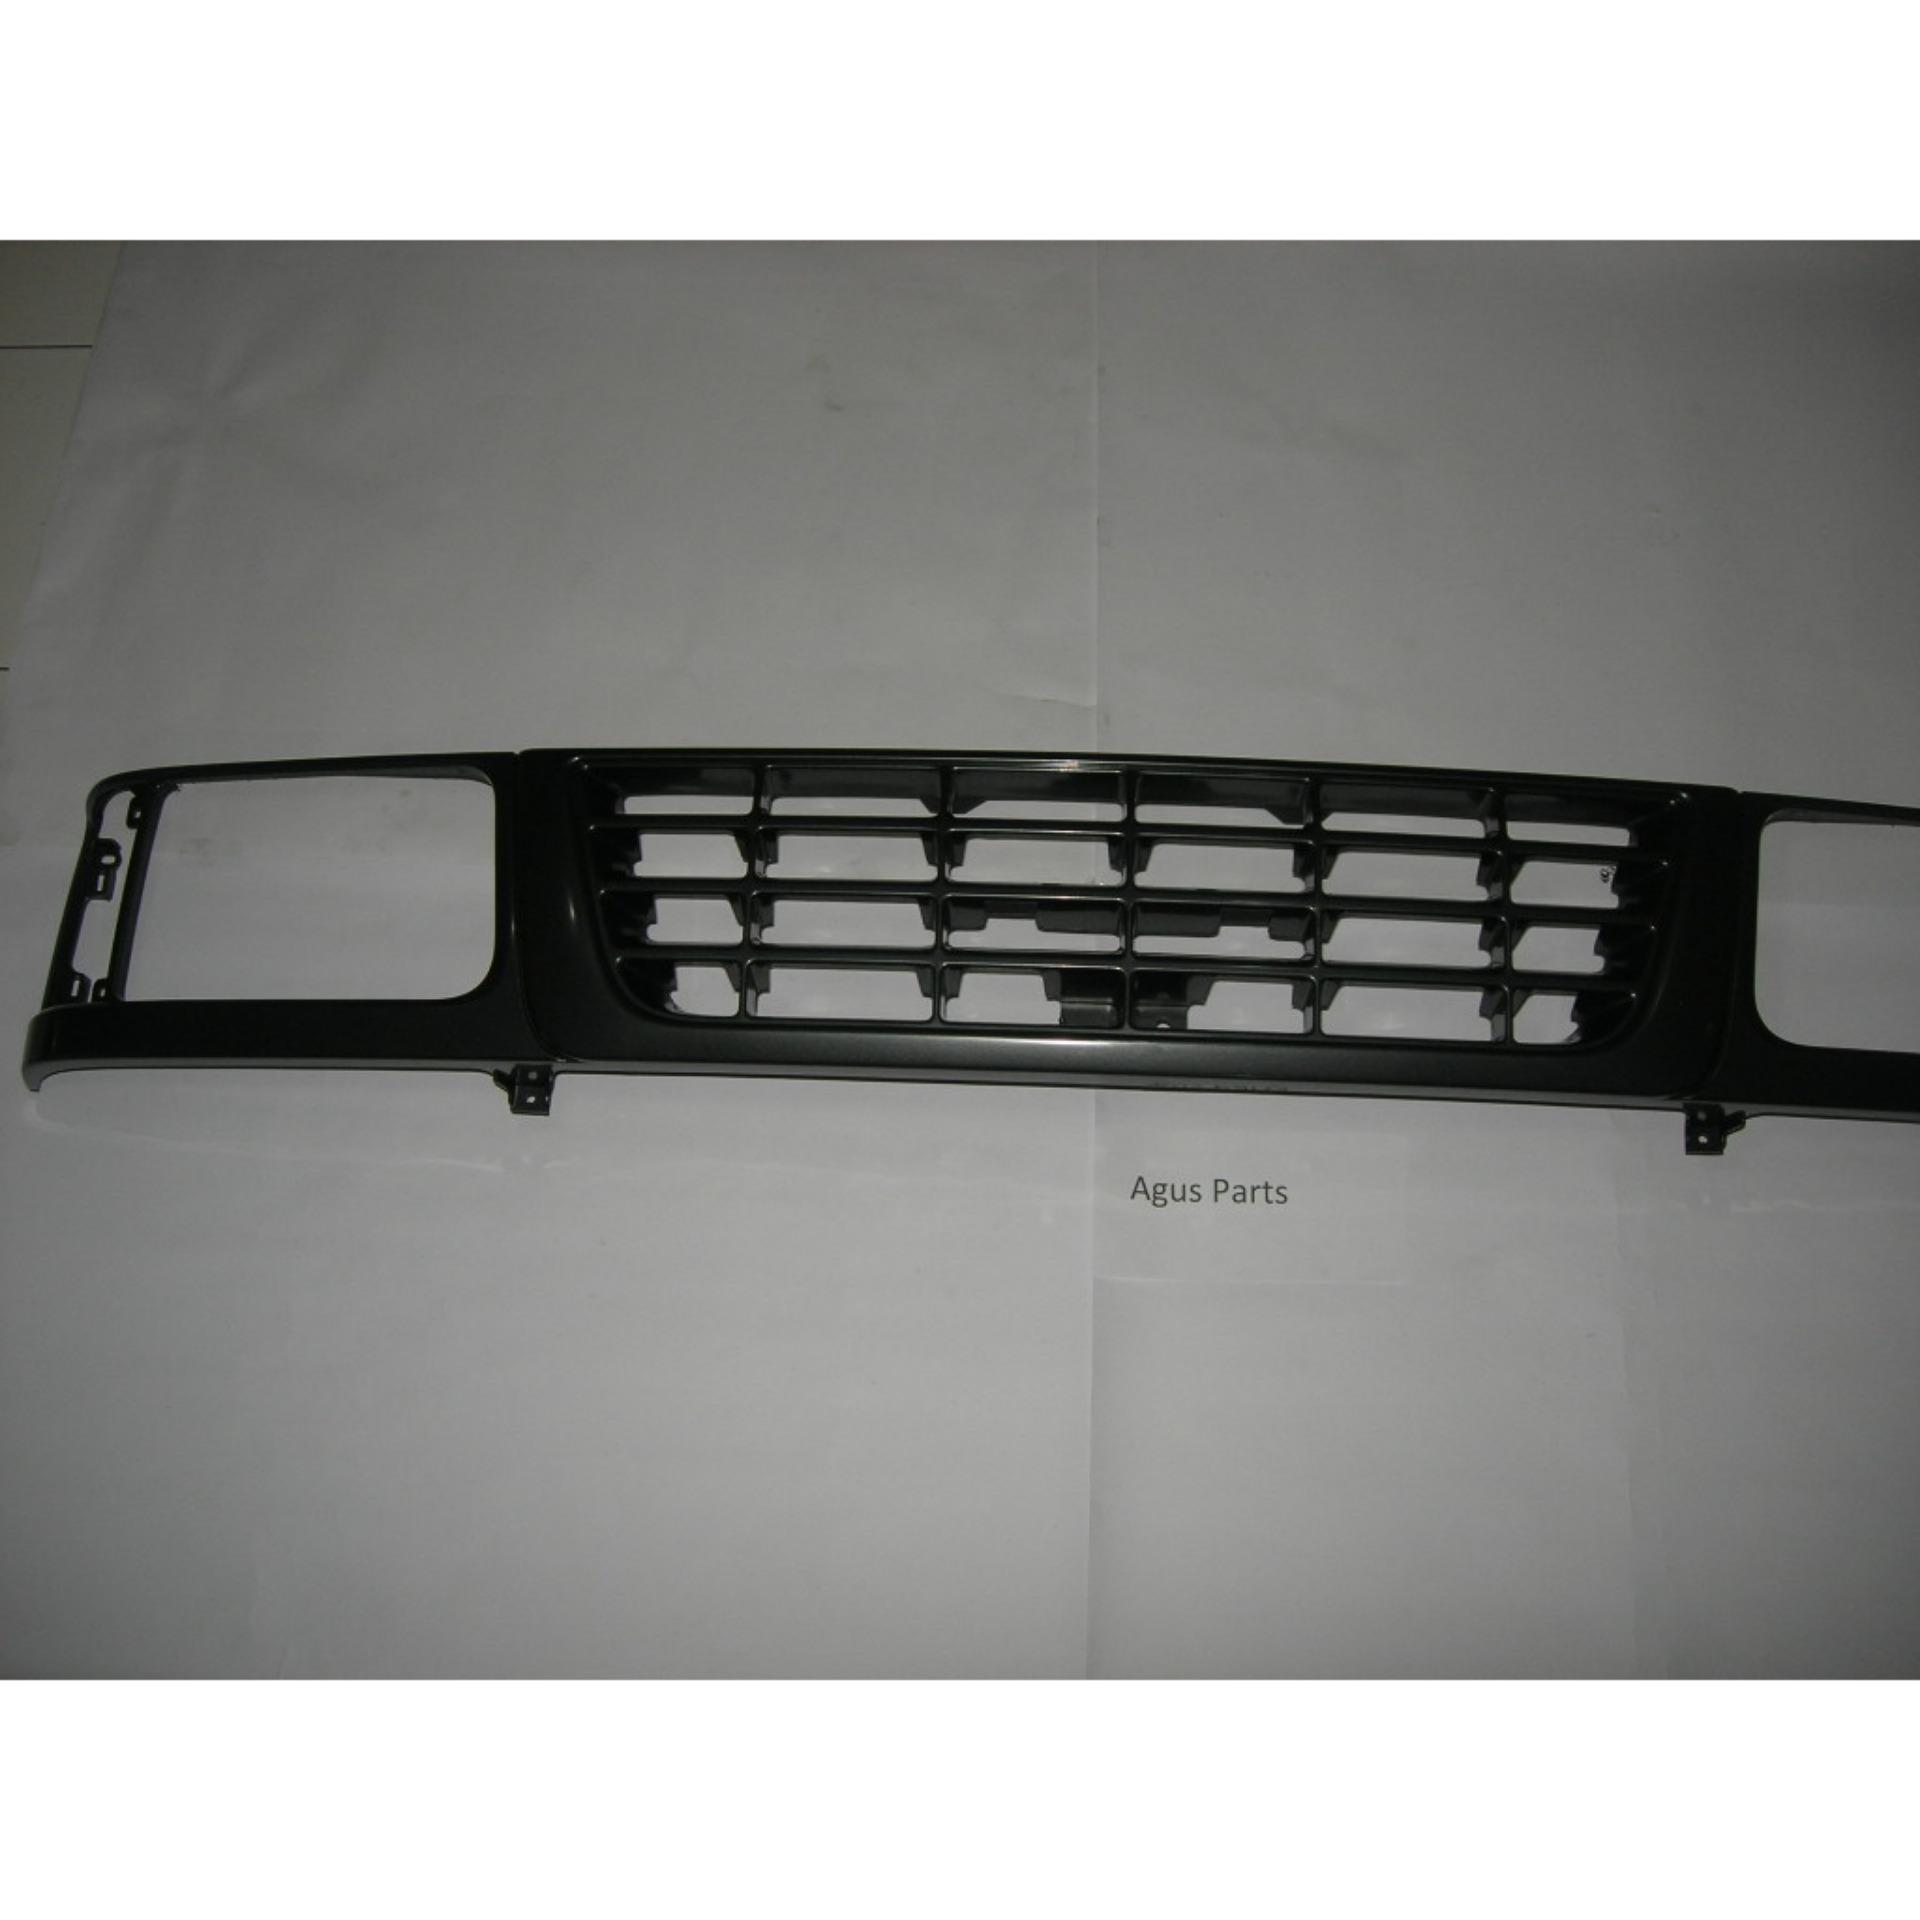 Isuzu Grill Depan Ori Panther Grand Royal/New Royal/New Hi Grade/Hi Sporty th 1996-2000.Area Surabaya Sidoarjo Gresik